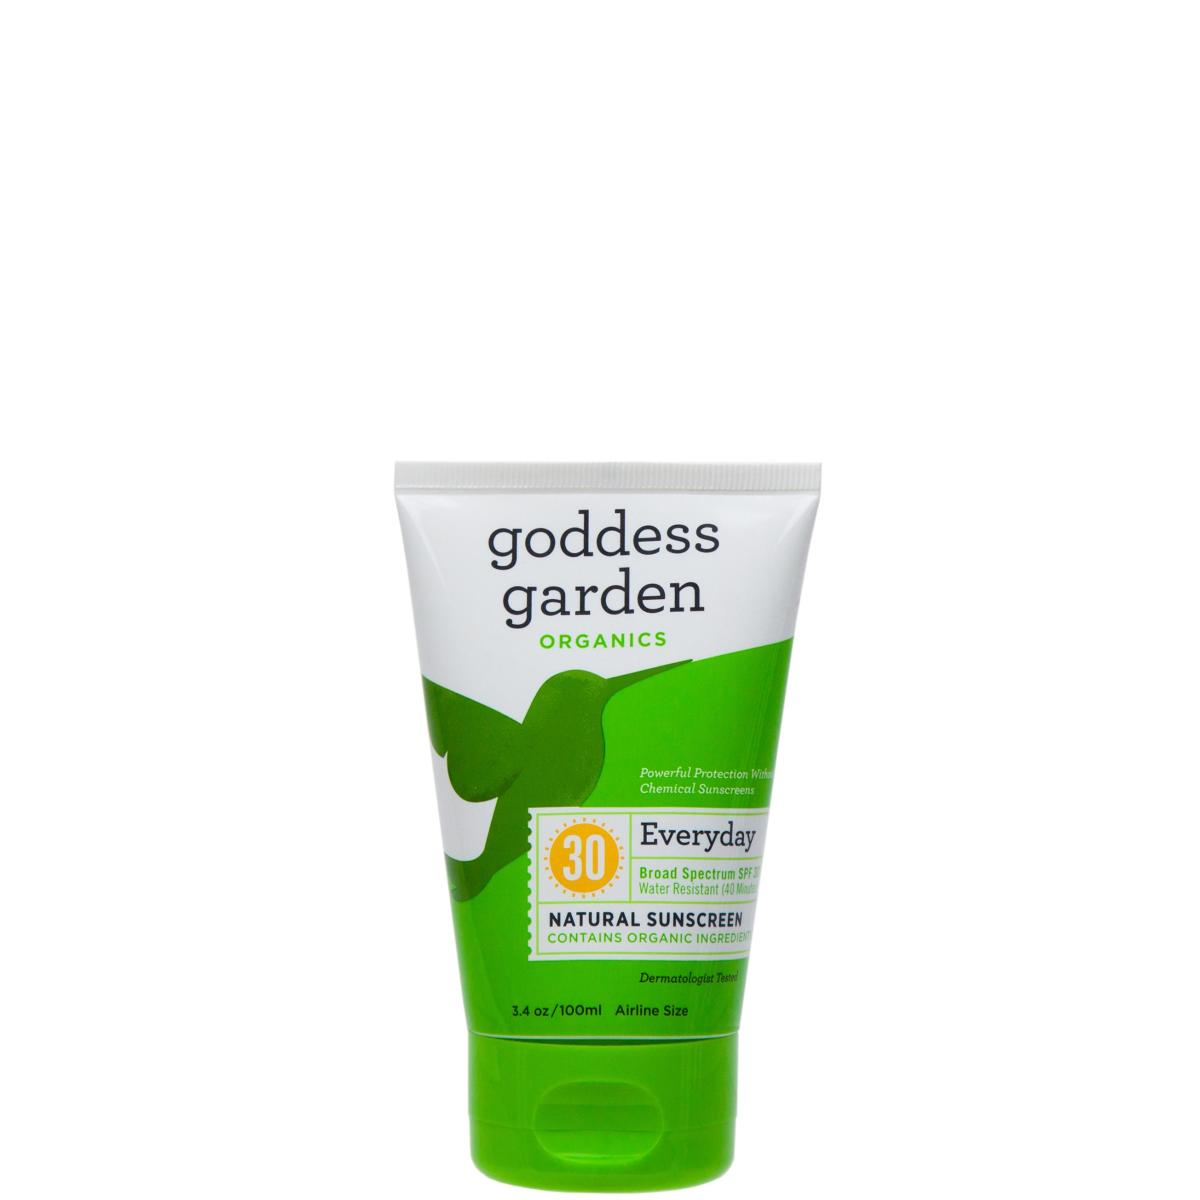 Goddess Garden Everyday Natural Sunscreen Lotion